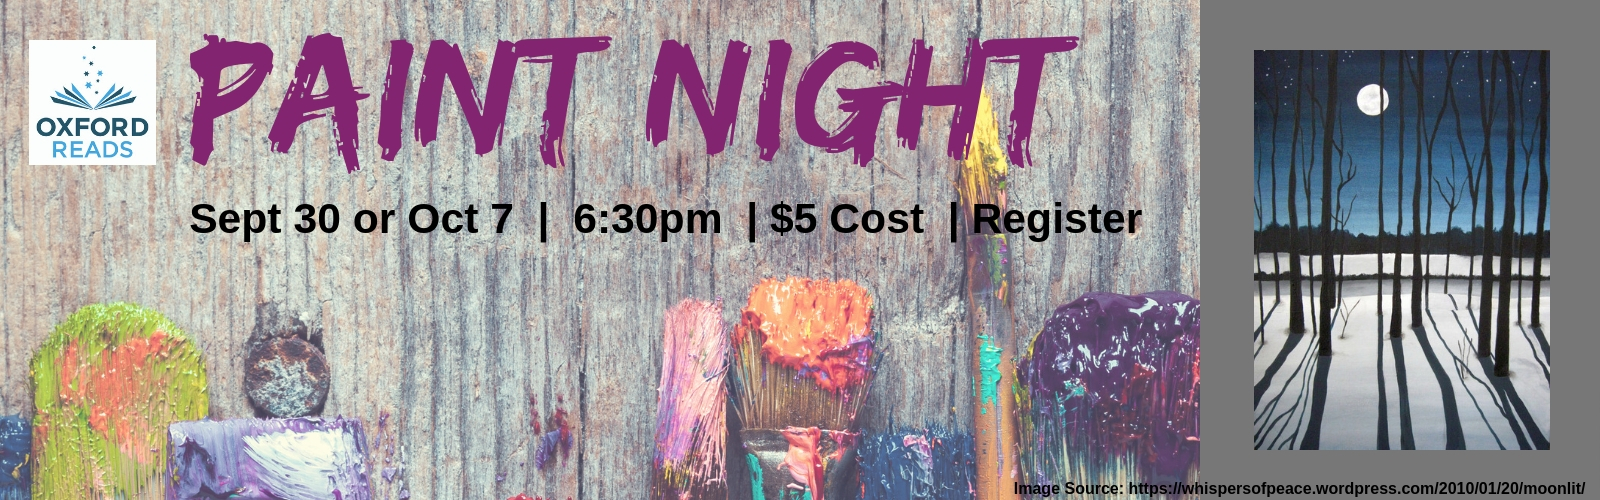 Paint Night September 30 or August 7 at 6:30 pm Cost $5 Register